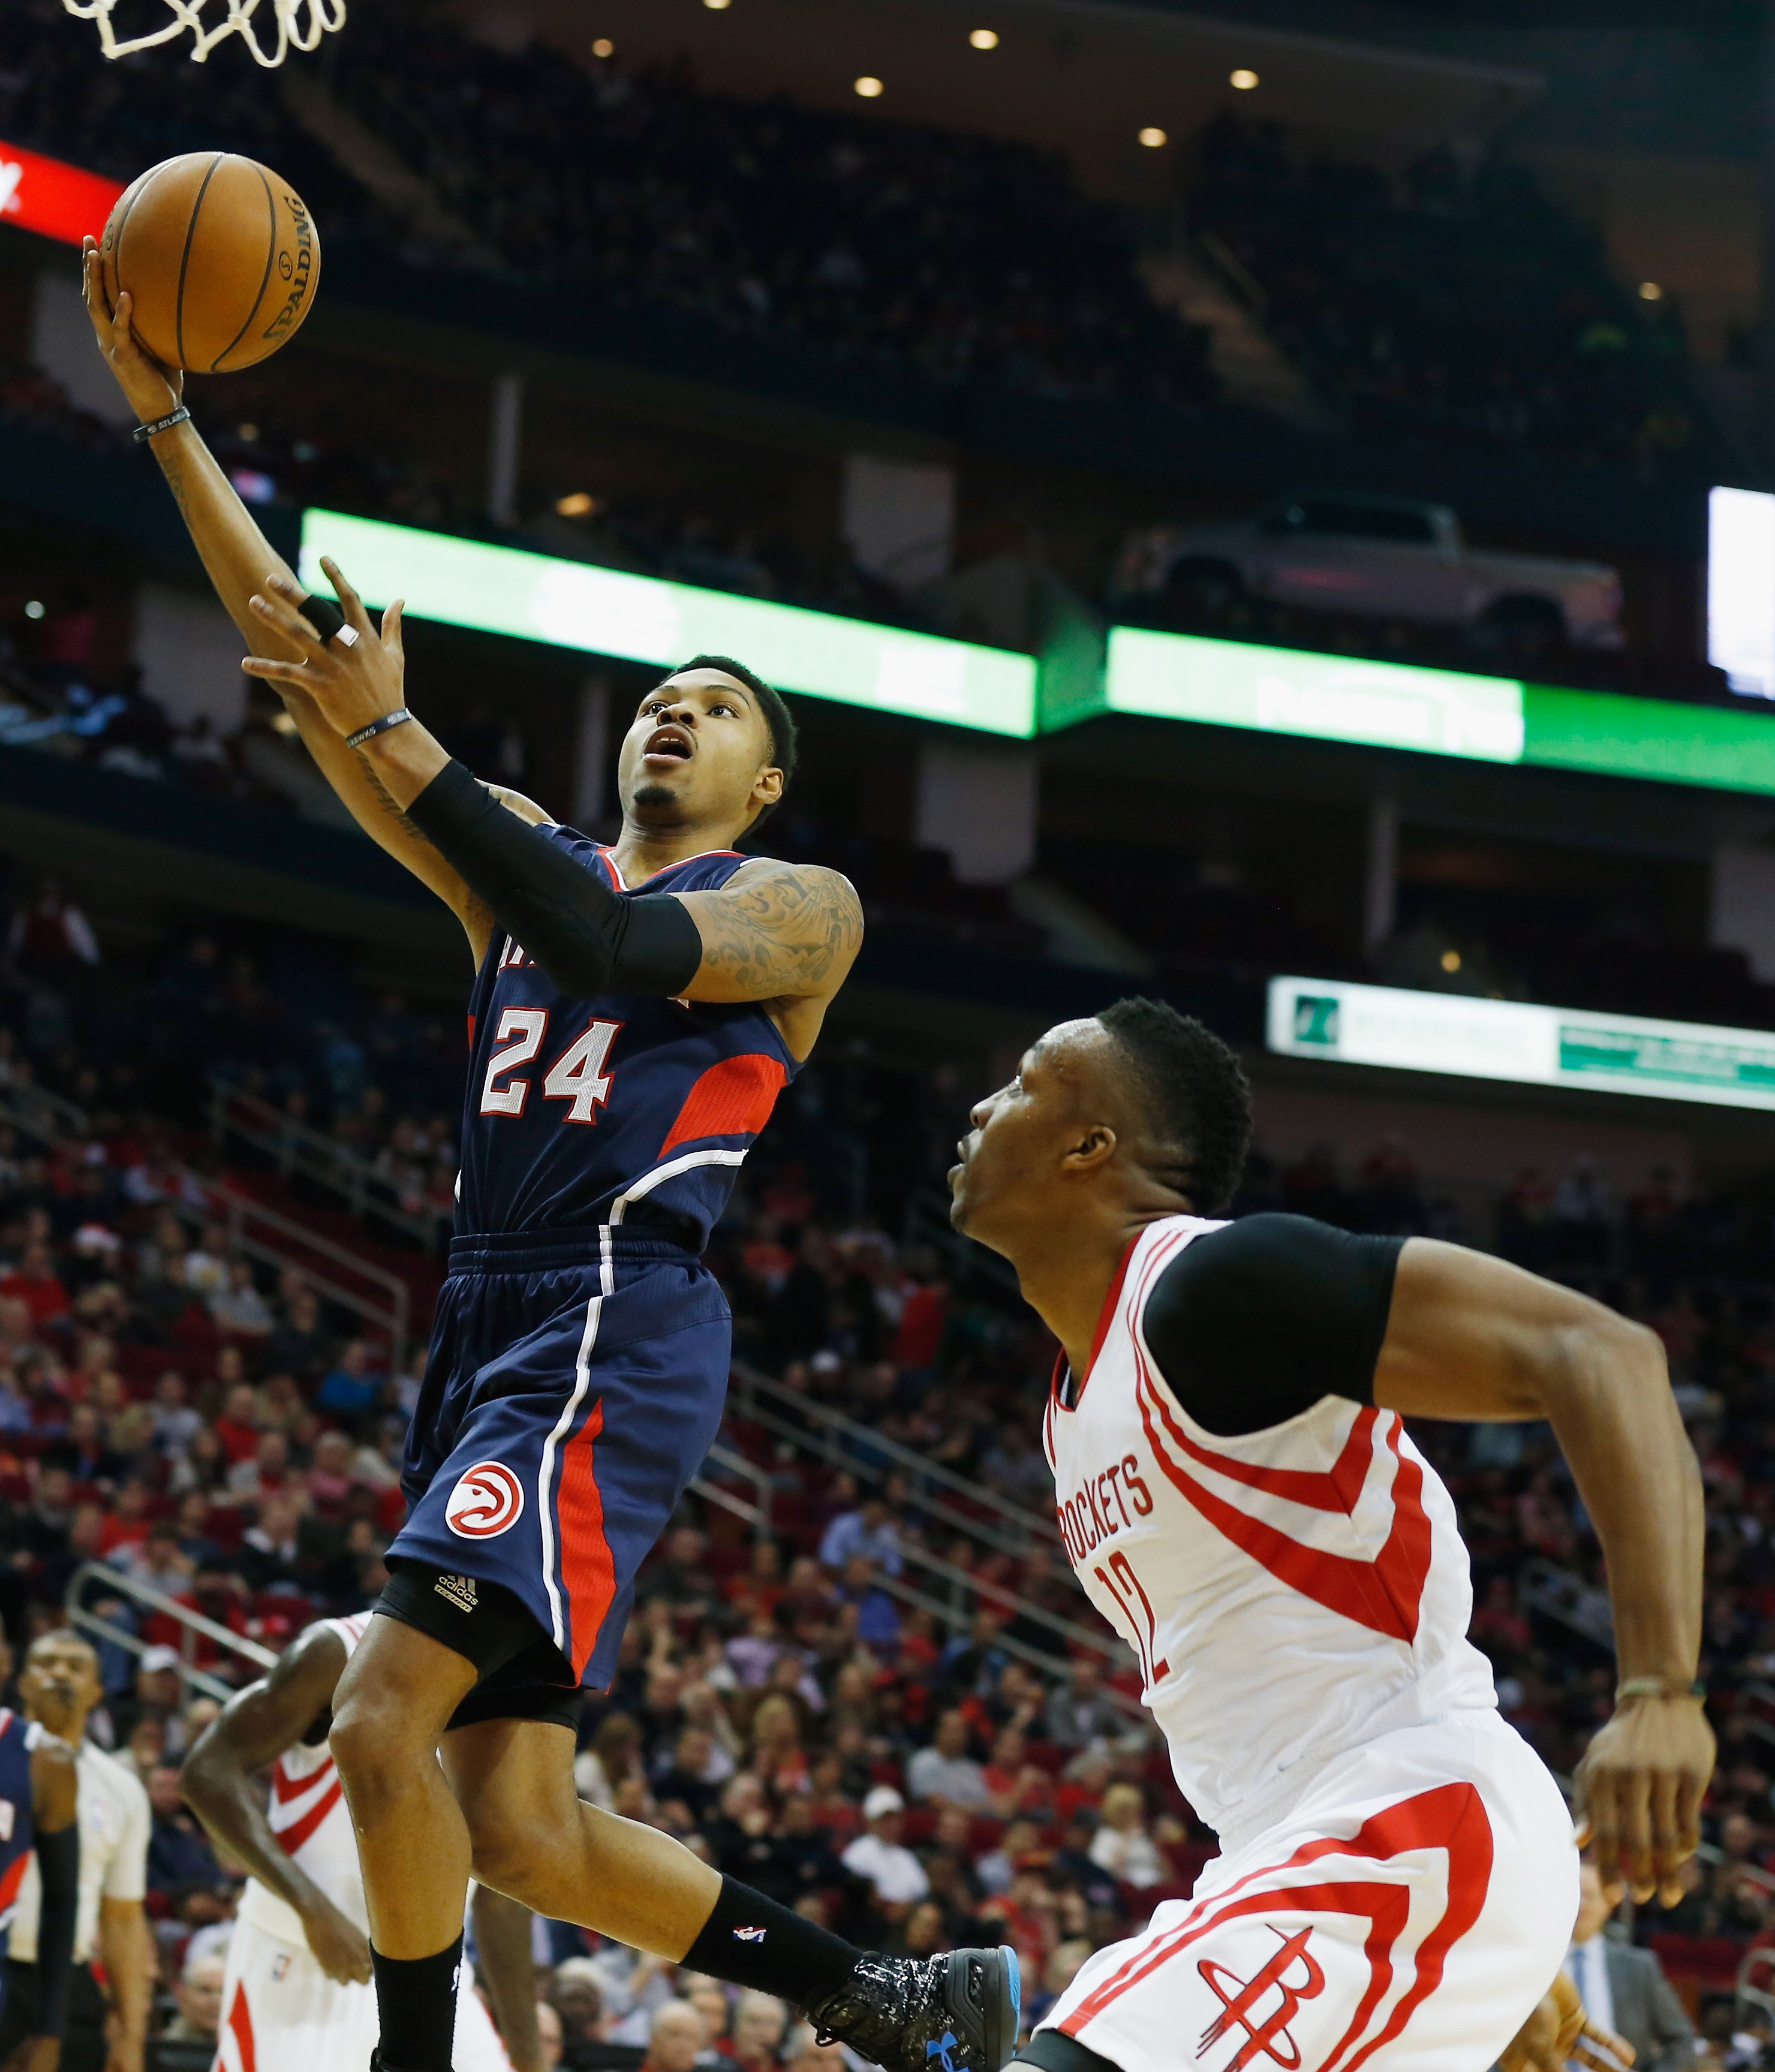 HOUSTON, TX - DECEMBER 20:  Kent Bazemore #24 of the Atlanta Hawks drives with the basketball past Dwight Howard #12 of the Houston Rockets during their game at the Toyota Center on December 20, 2014 in Houston, Texas.  (Photo by Scott Halleran/Getty Imag